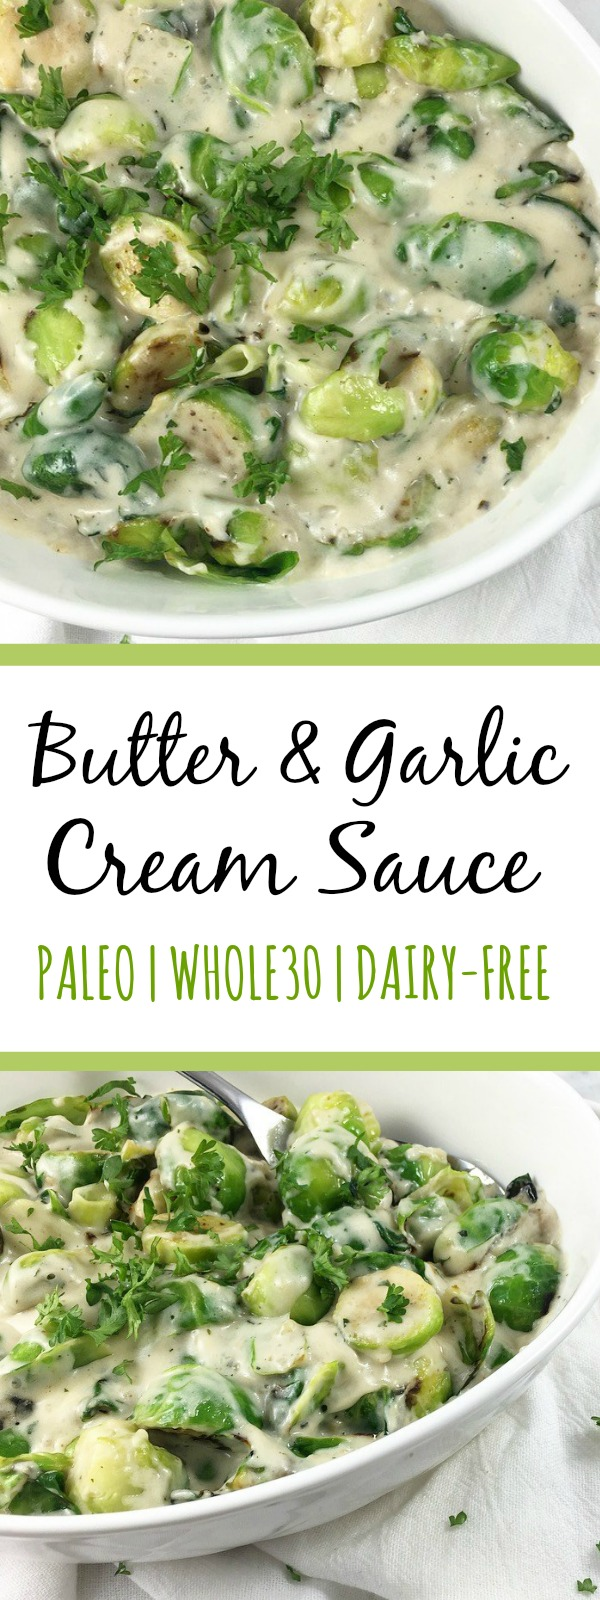 This dairy free cream sauce has the best butter and garlic flavor for a variety of uses. It's a Whole30 sauce that can be used in paleo